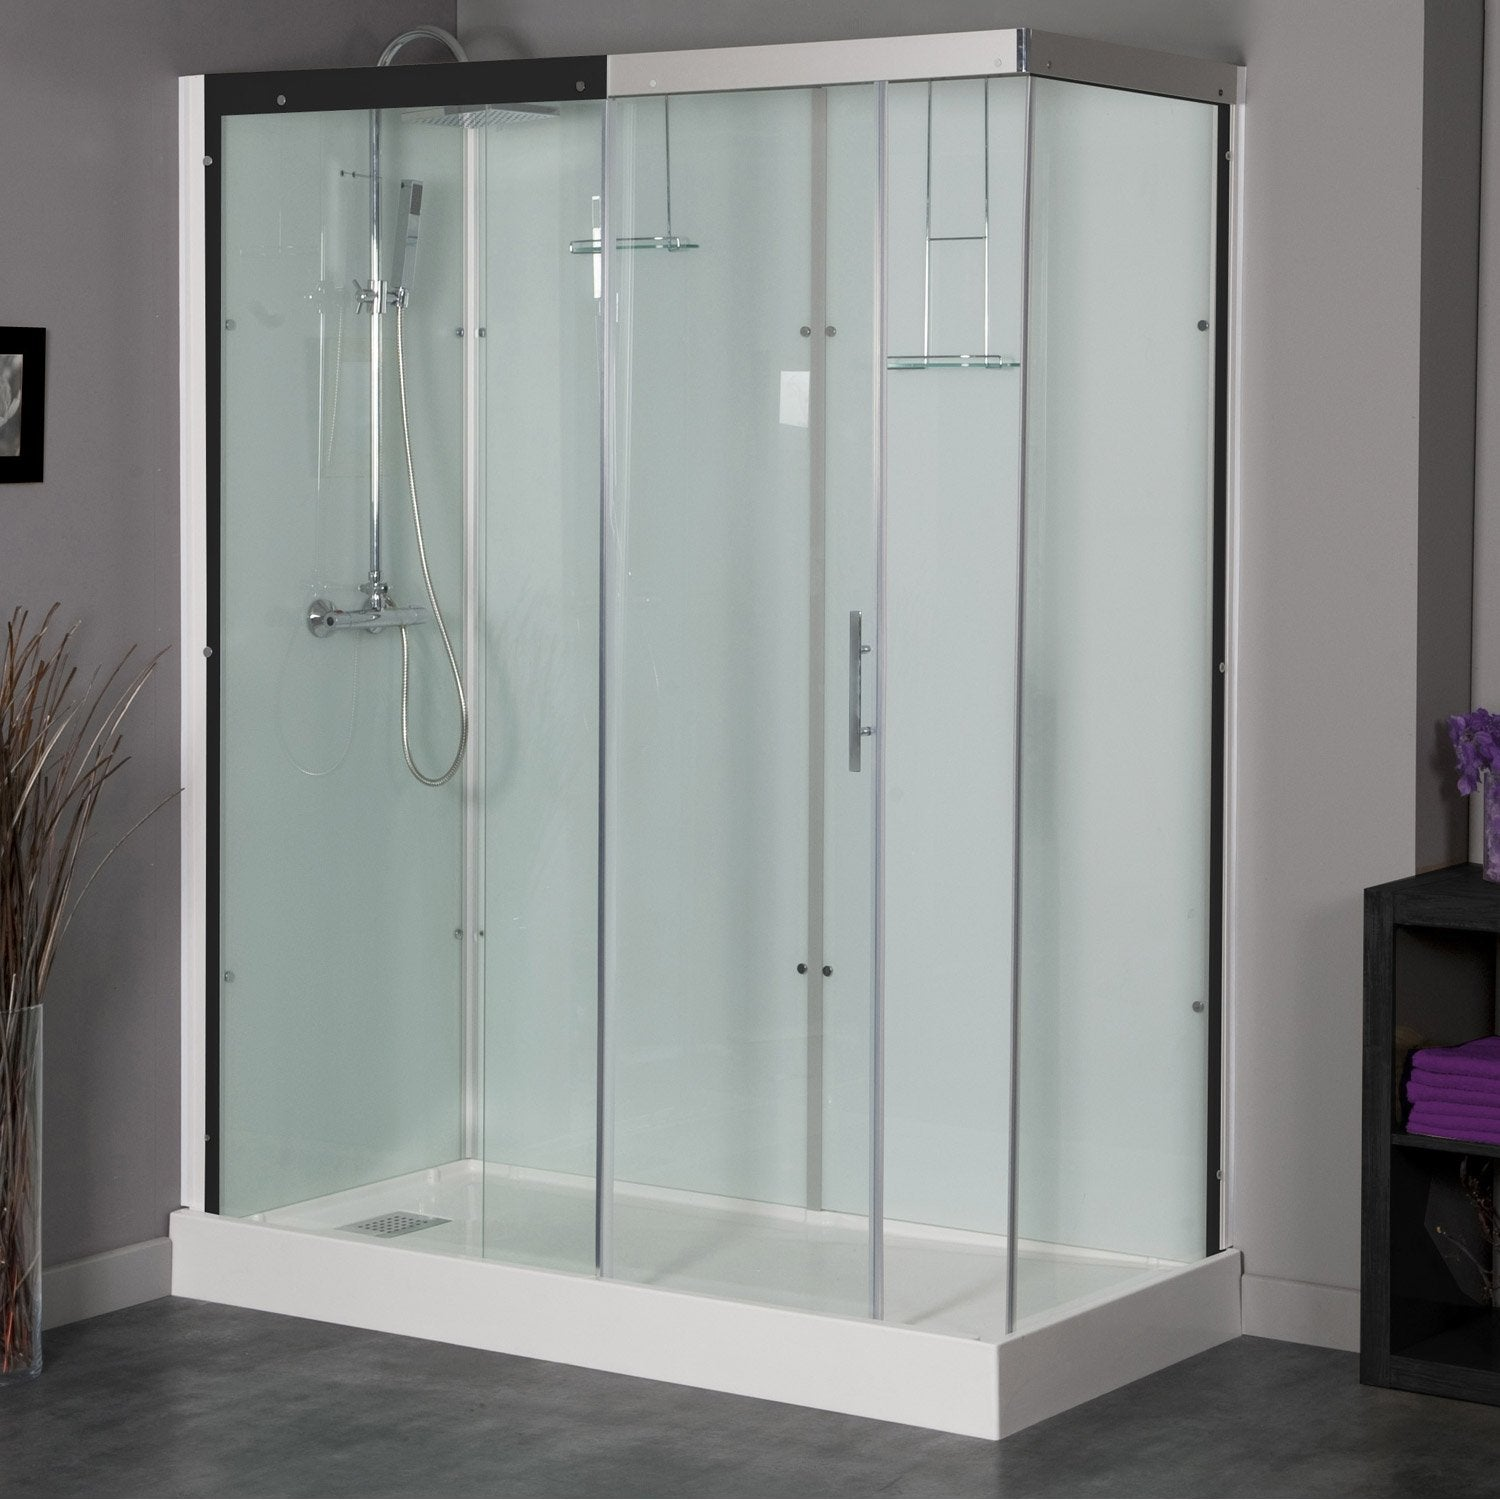 cabine de douche rectangulaire 180x80 cm thalaglass 2 thermo leroy merlin. Black Bedroom Furniture Sets. Home Design Ideas